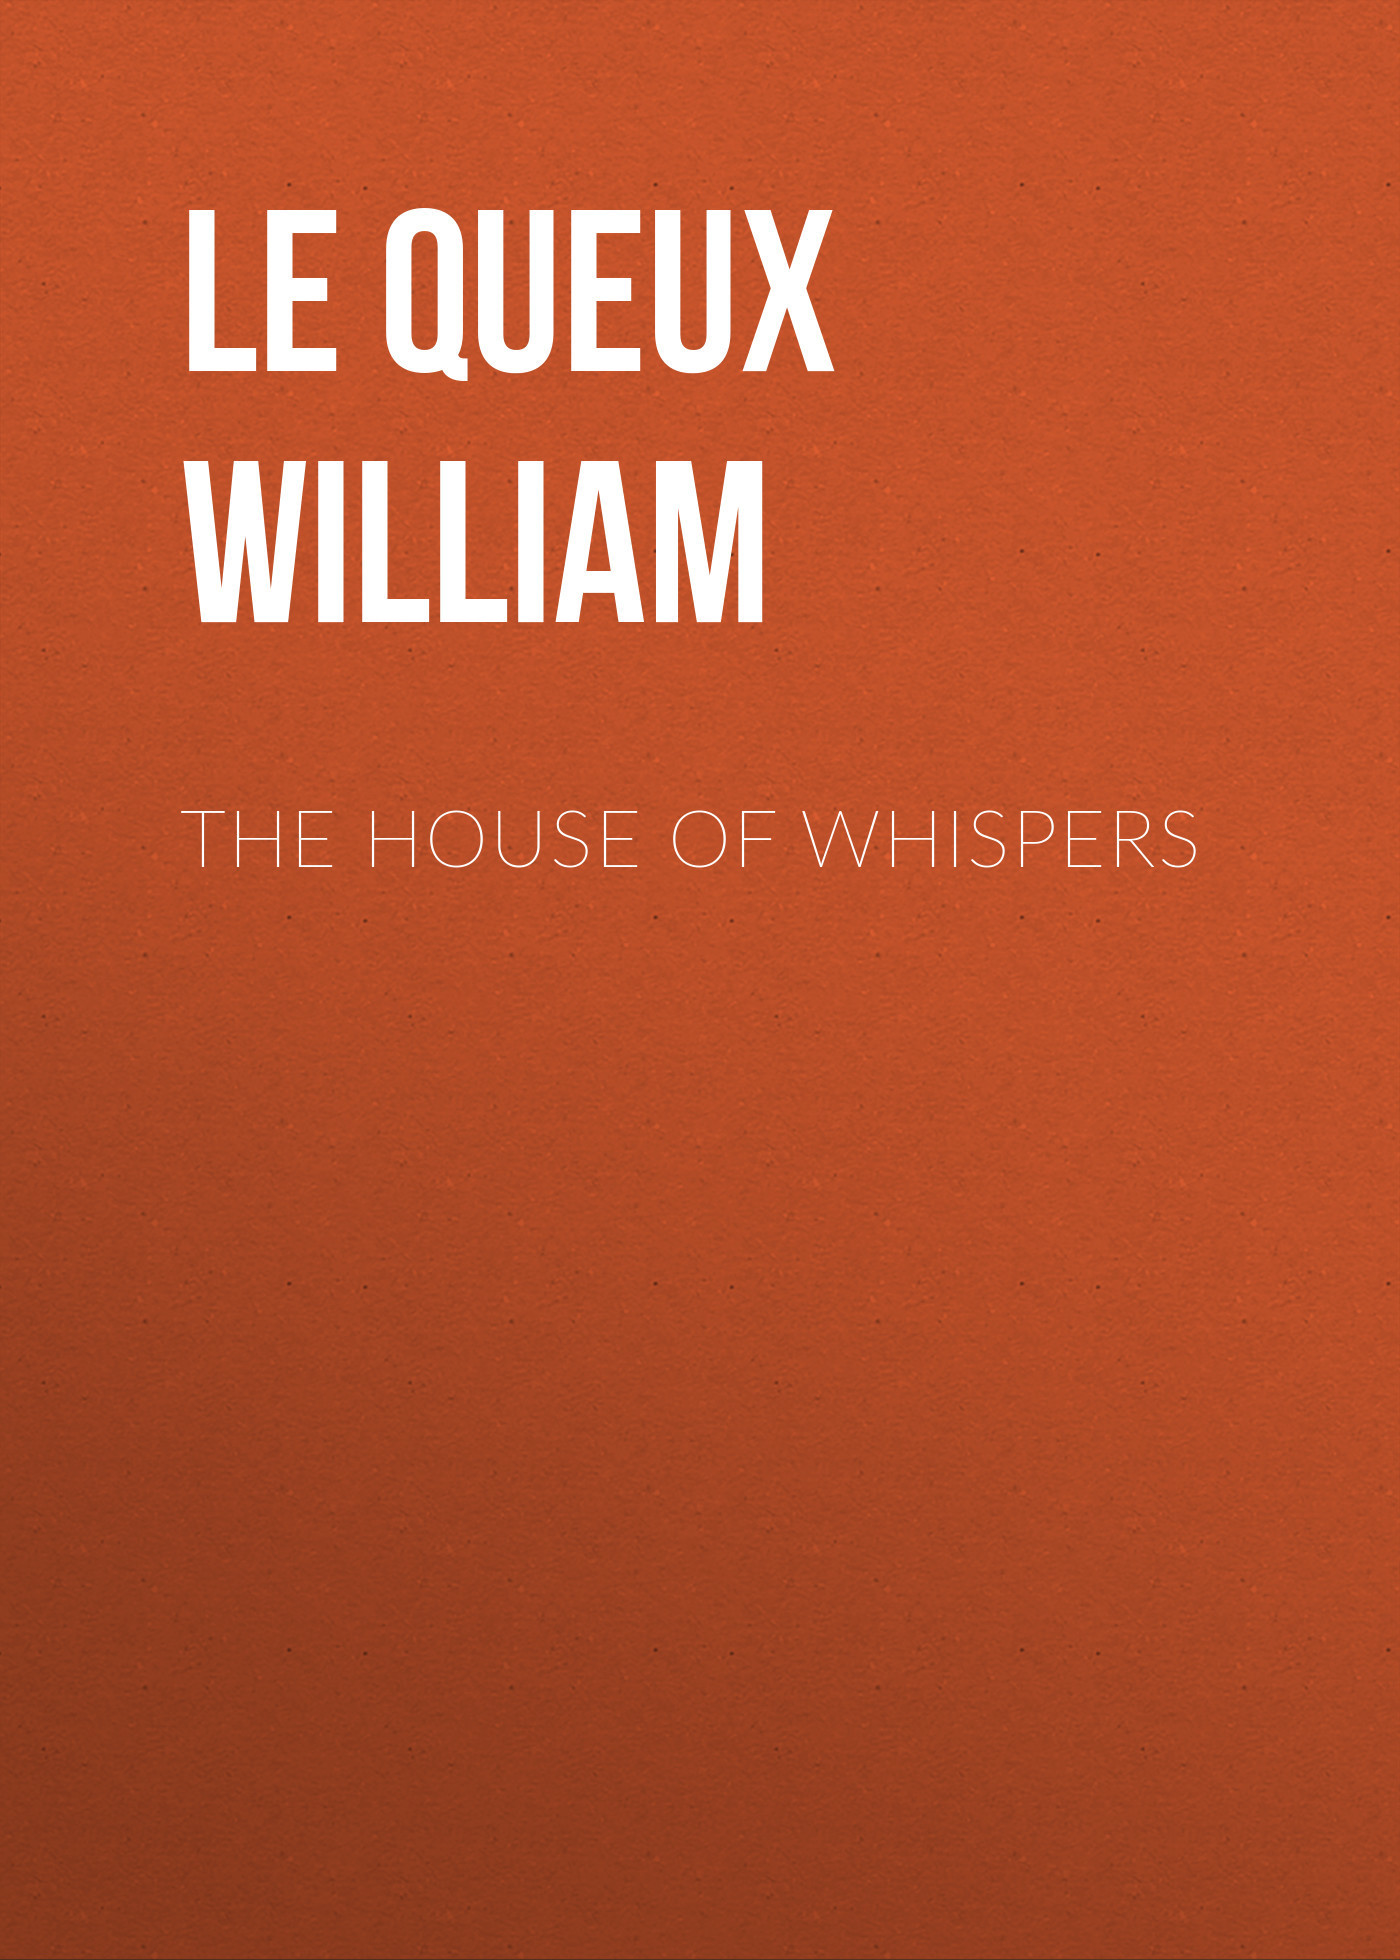 Le Queux William The House of Whispers гвоздики the xi che magic butterfly whispers